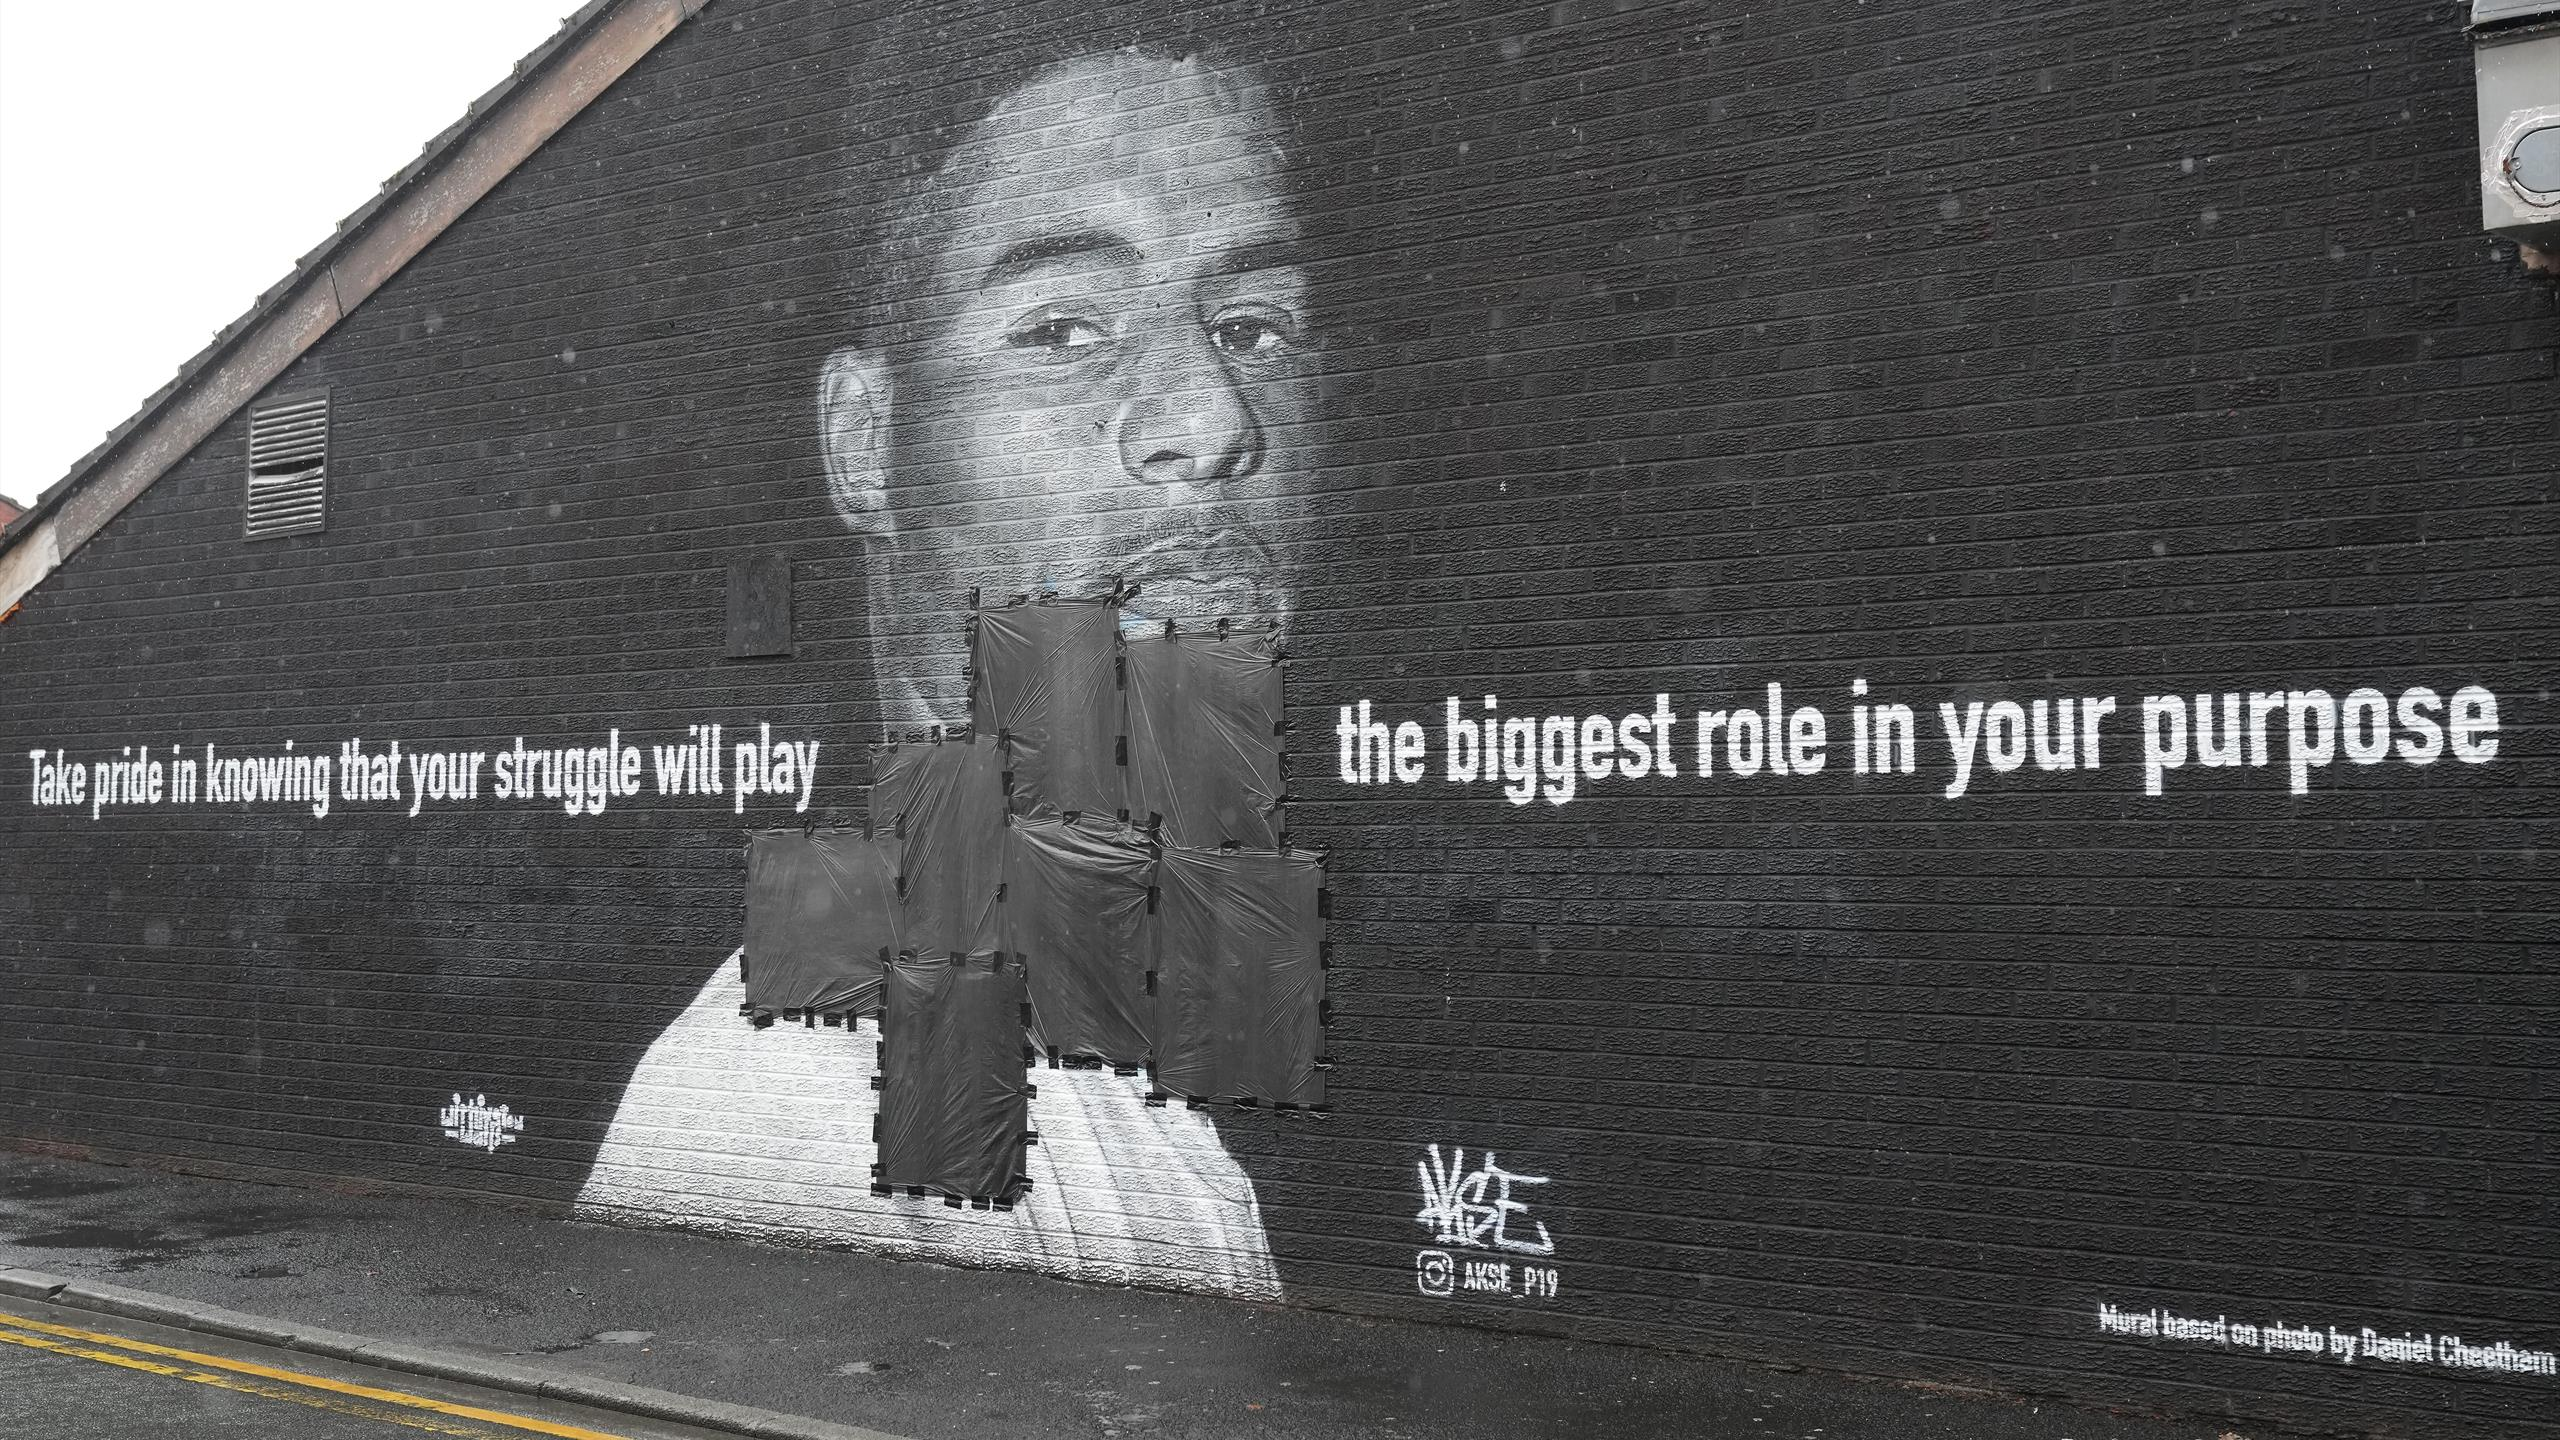 rashford-mural-defaced-in-manchester-after-england-exit.jpg